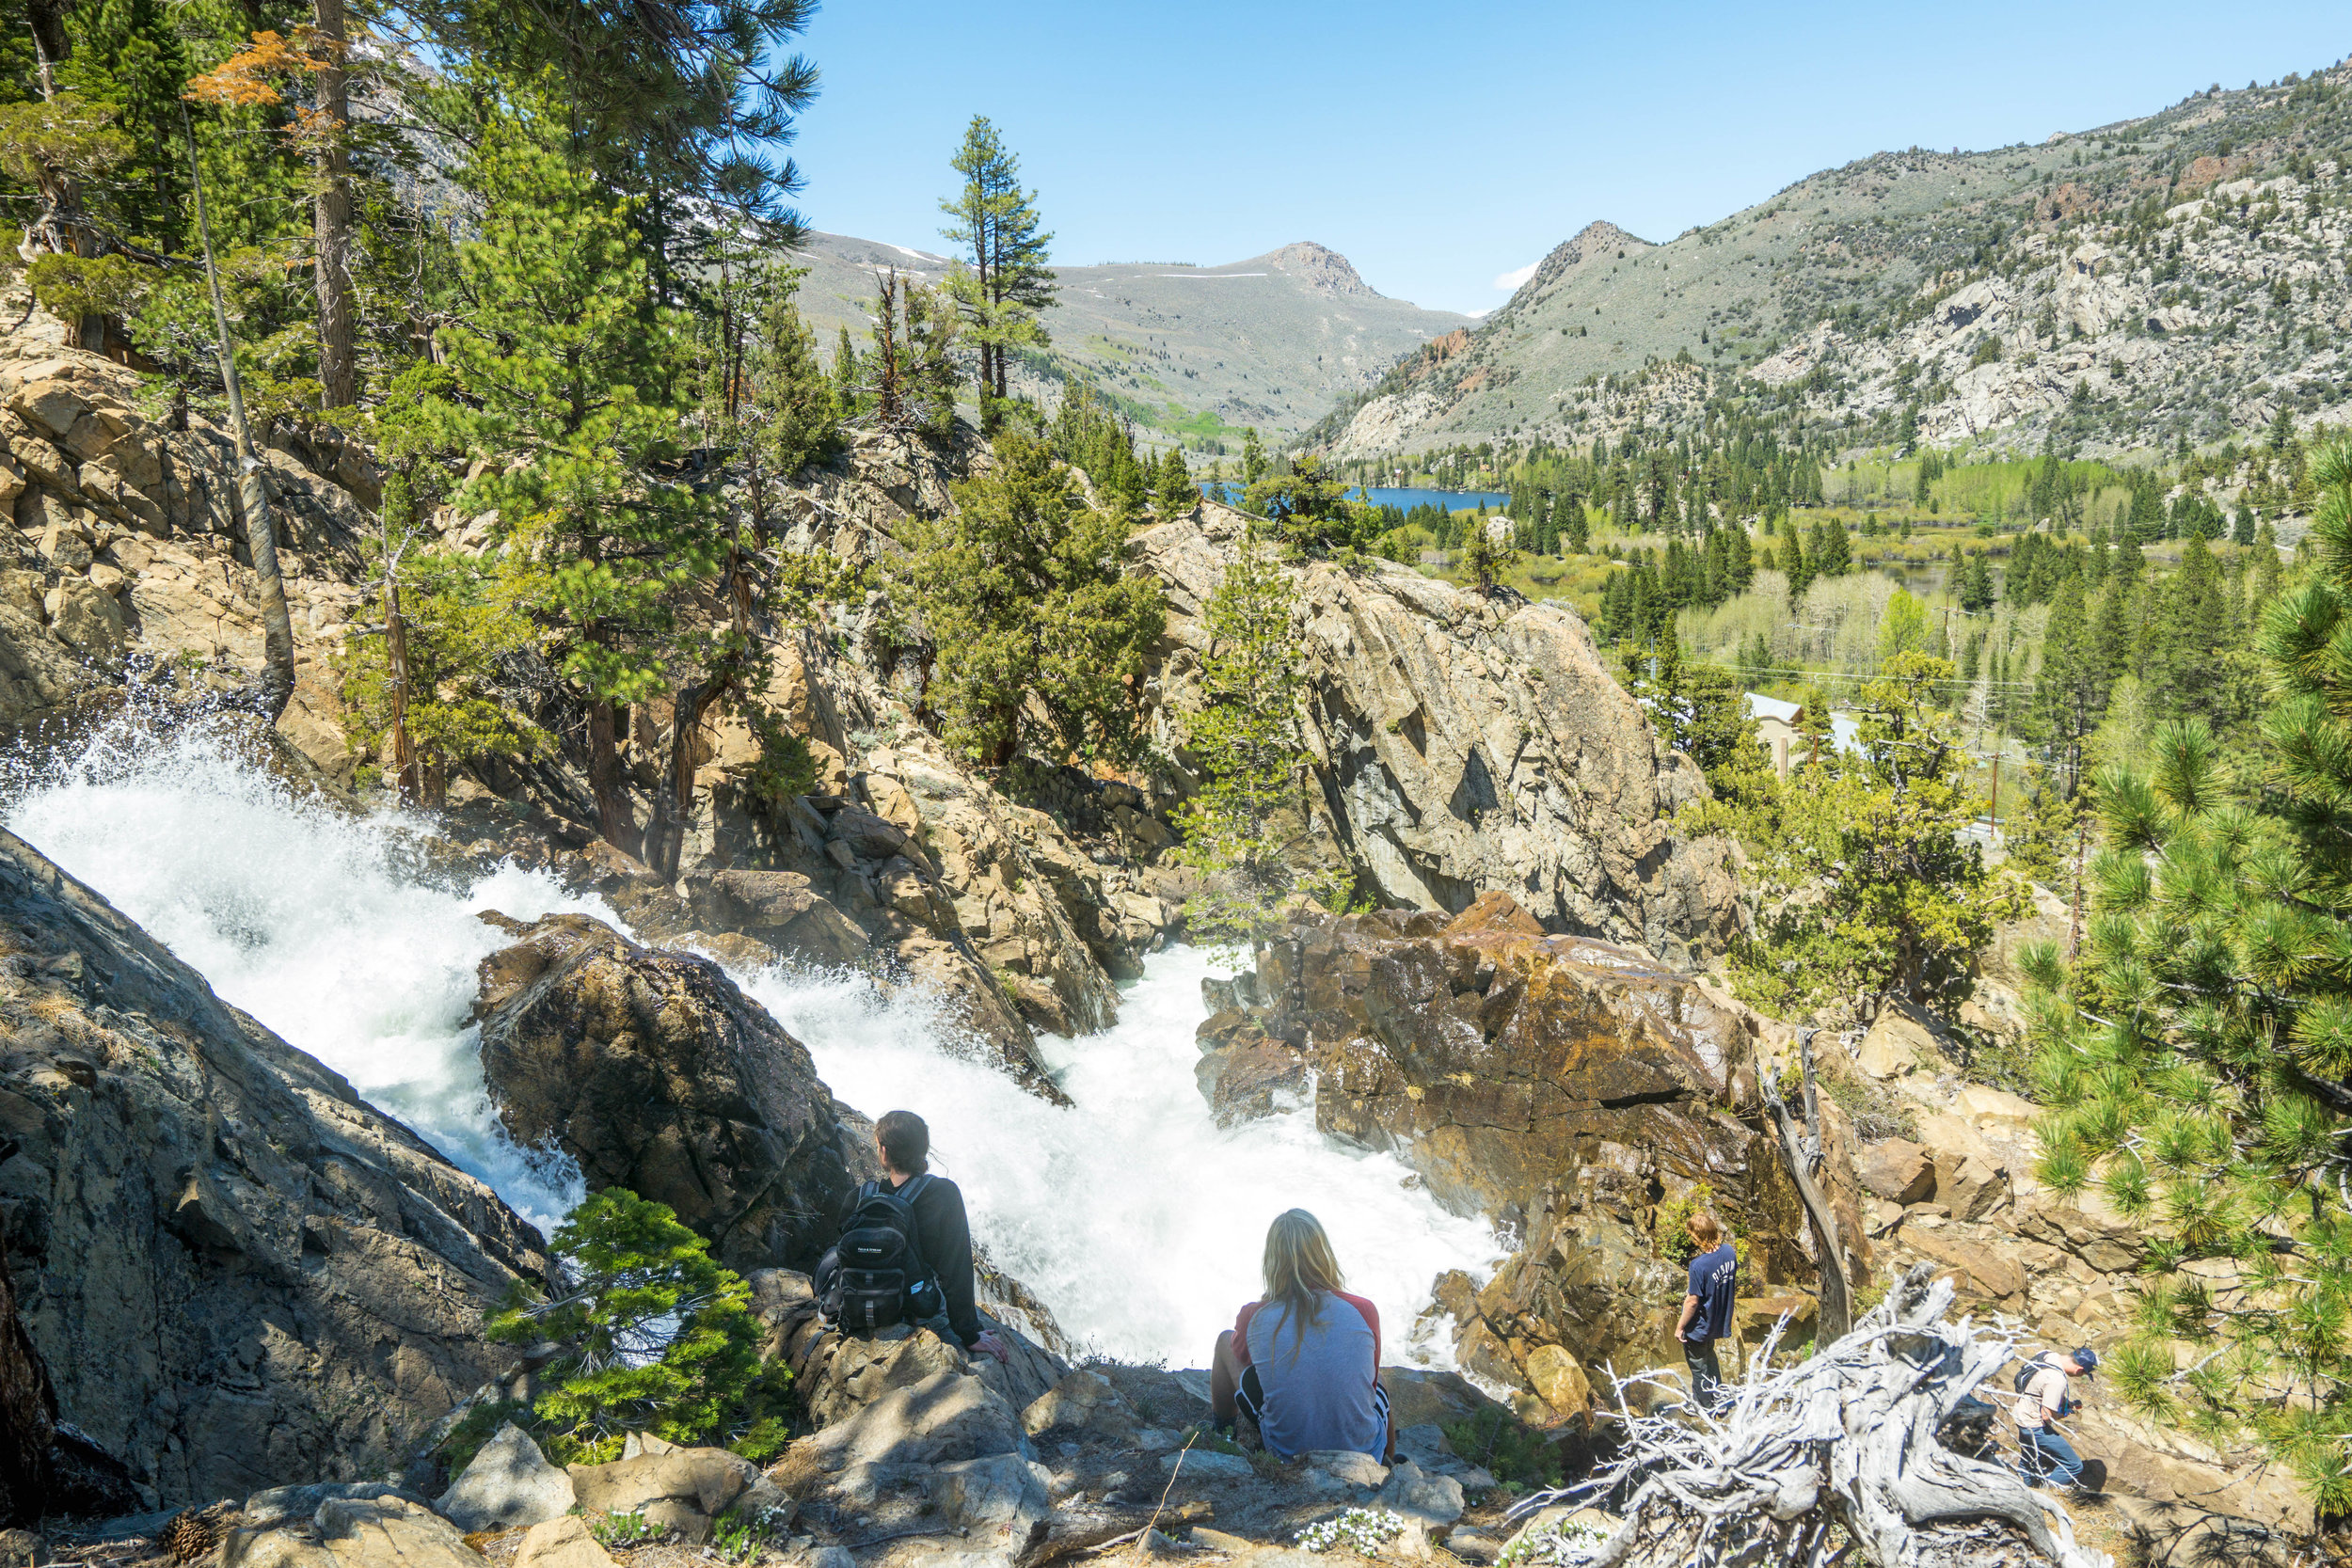 Since the entire hike was essentially adjacent to the river we consistently found ourselves taking breaks to admire the powerful cascades.